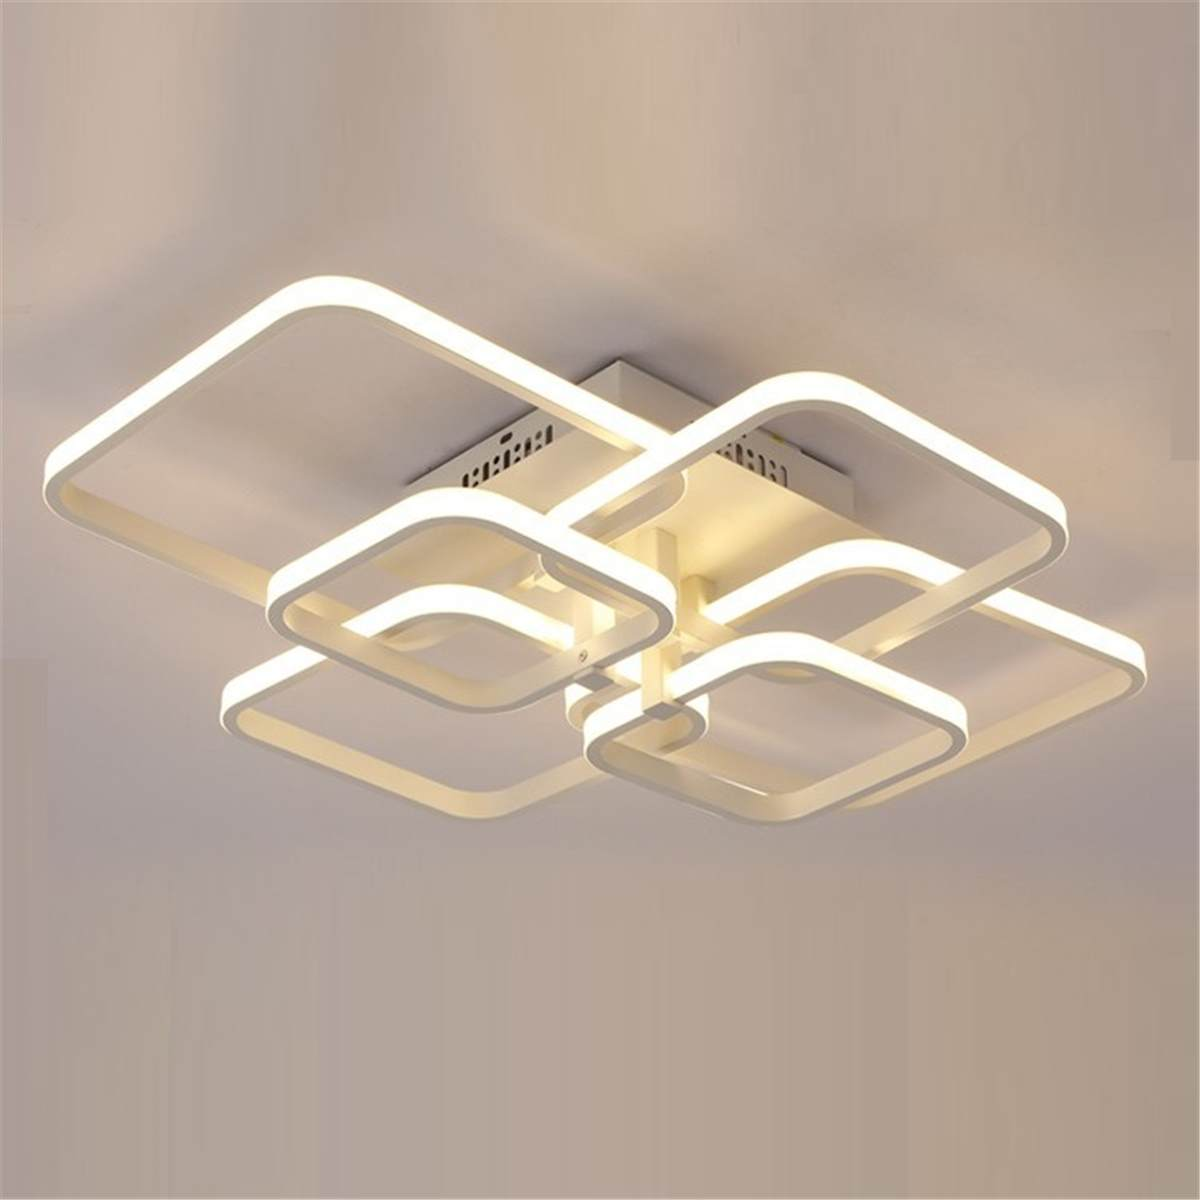 6Heads Rectangle Acrylic Aluminum Modern LED Ceiling Lights for Livingroom Bedroom Hotel Restaurant Decor 110W6Heads Rectangle Acrylic Aluminum Modern LED Ceiling Lights for Livingroom Bedroom Hotel Restaurant Decor 110W